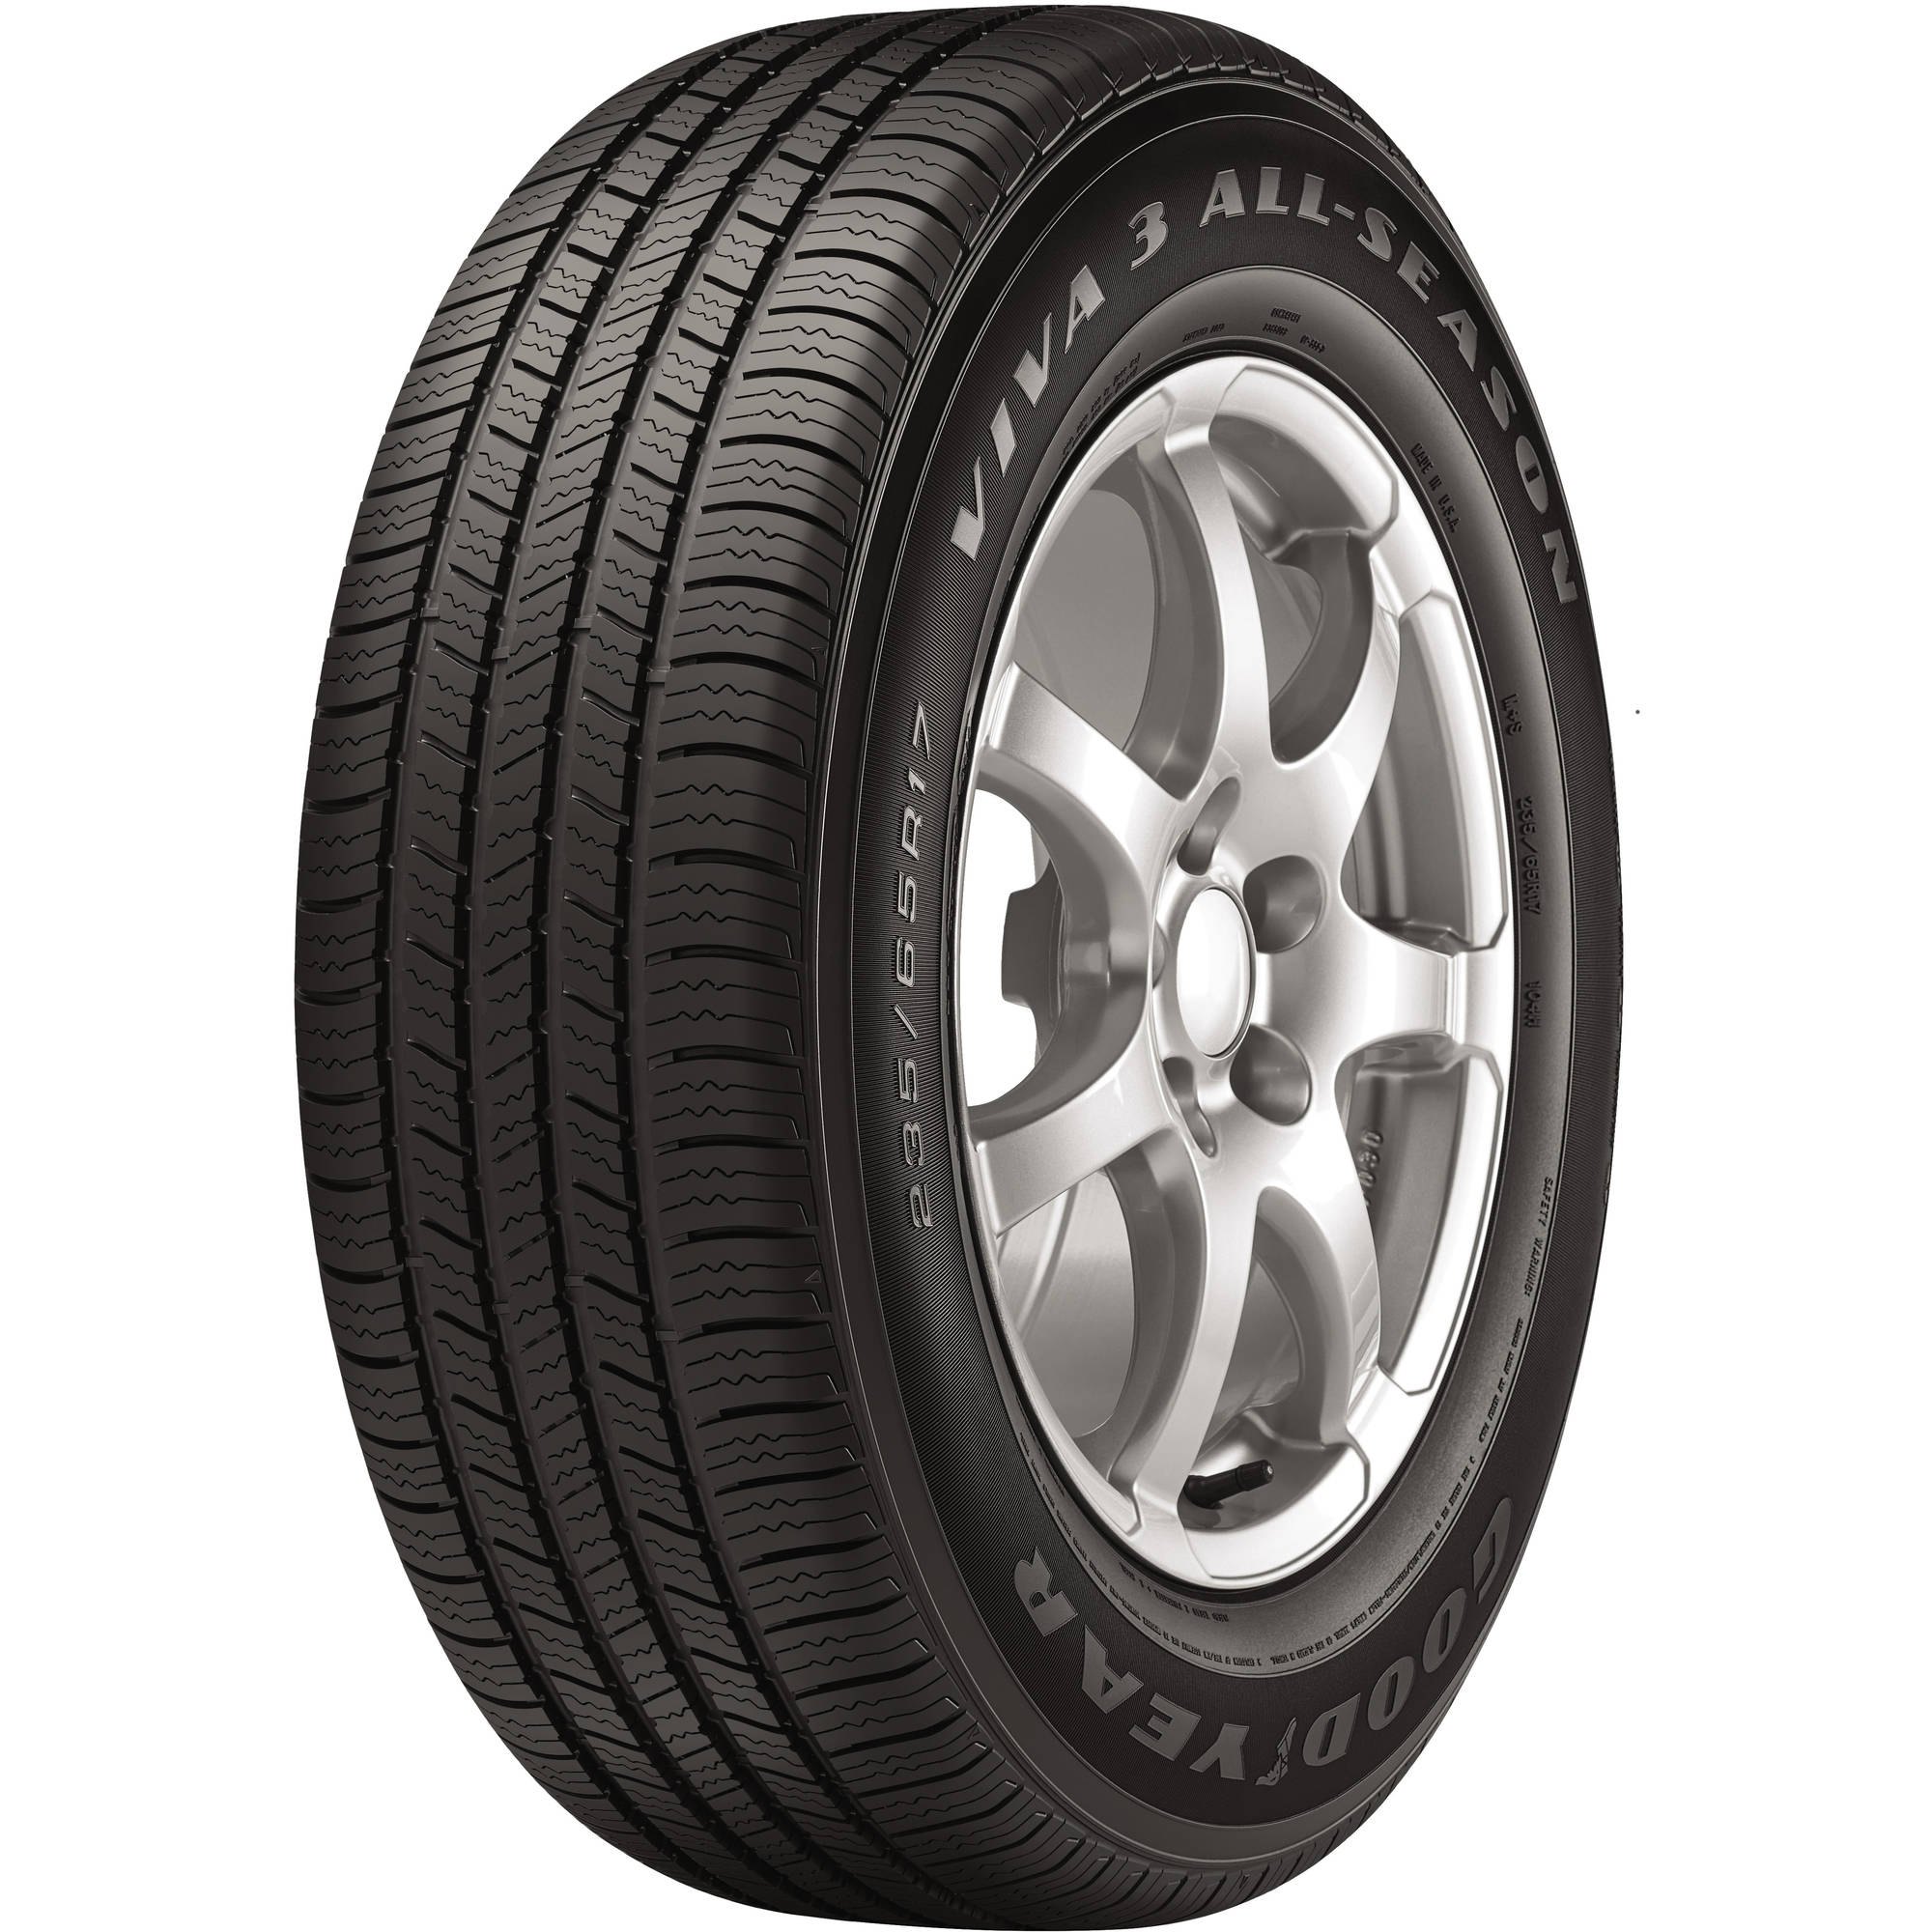 Continental TrueContact 235 65R16 103T BSW Touring tire Walmart